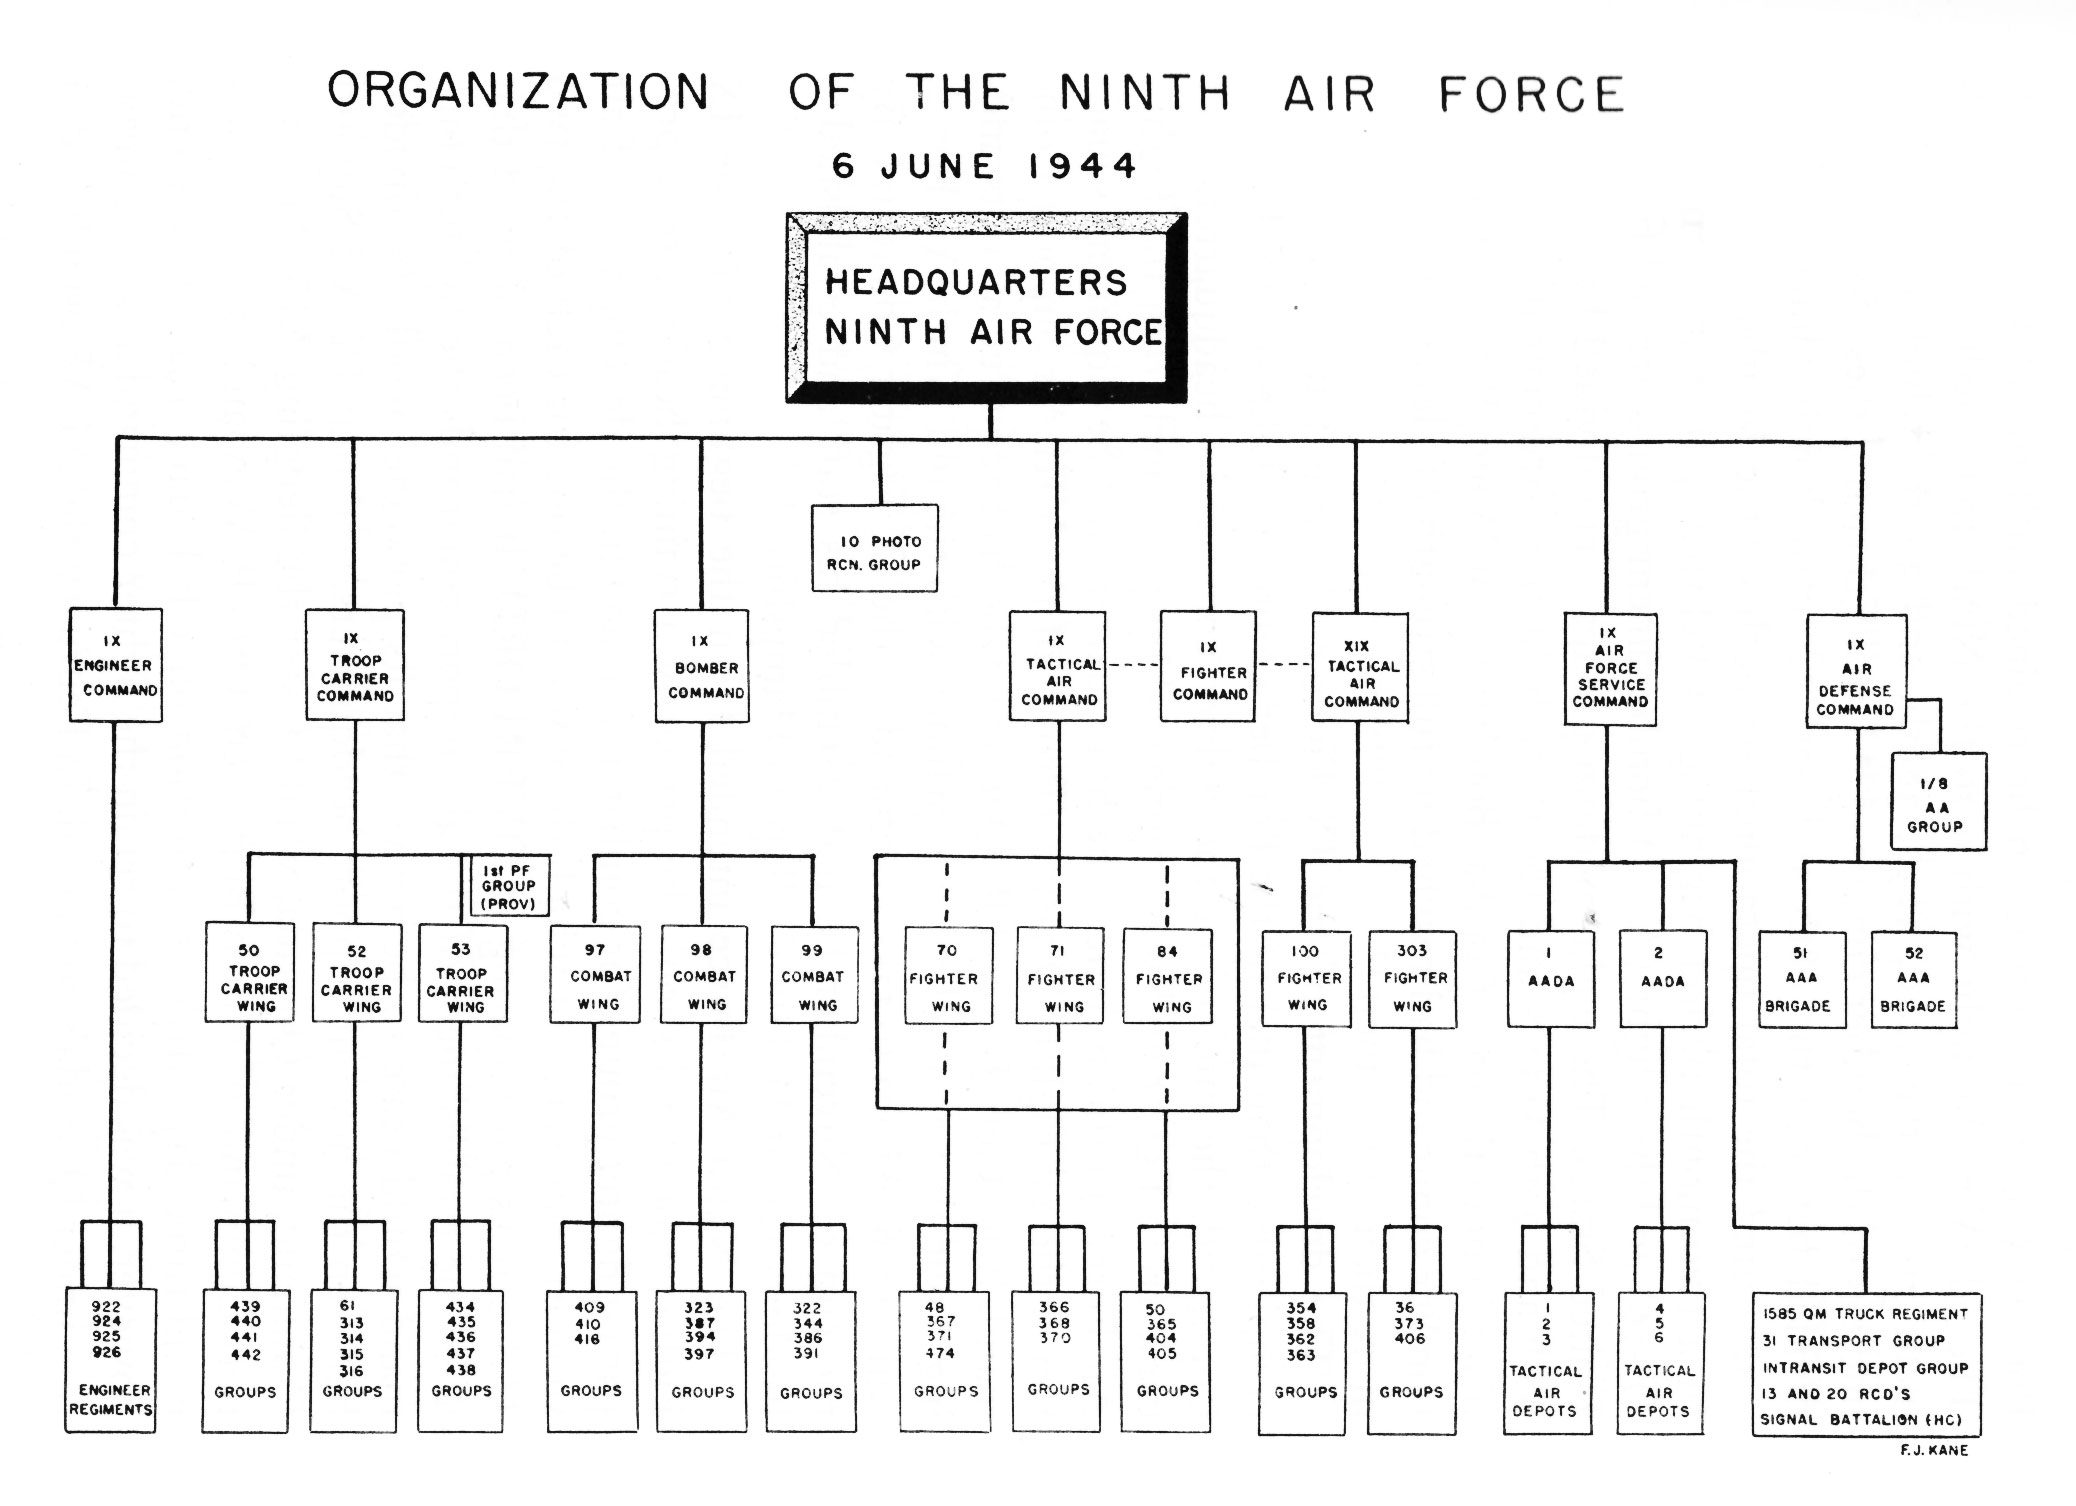 Image organization of the ninth air force 6 june 1944